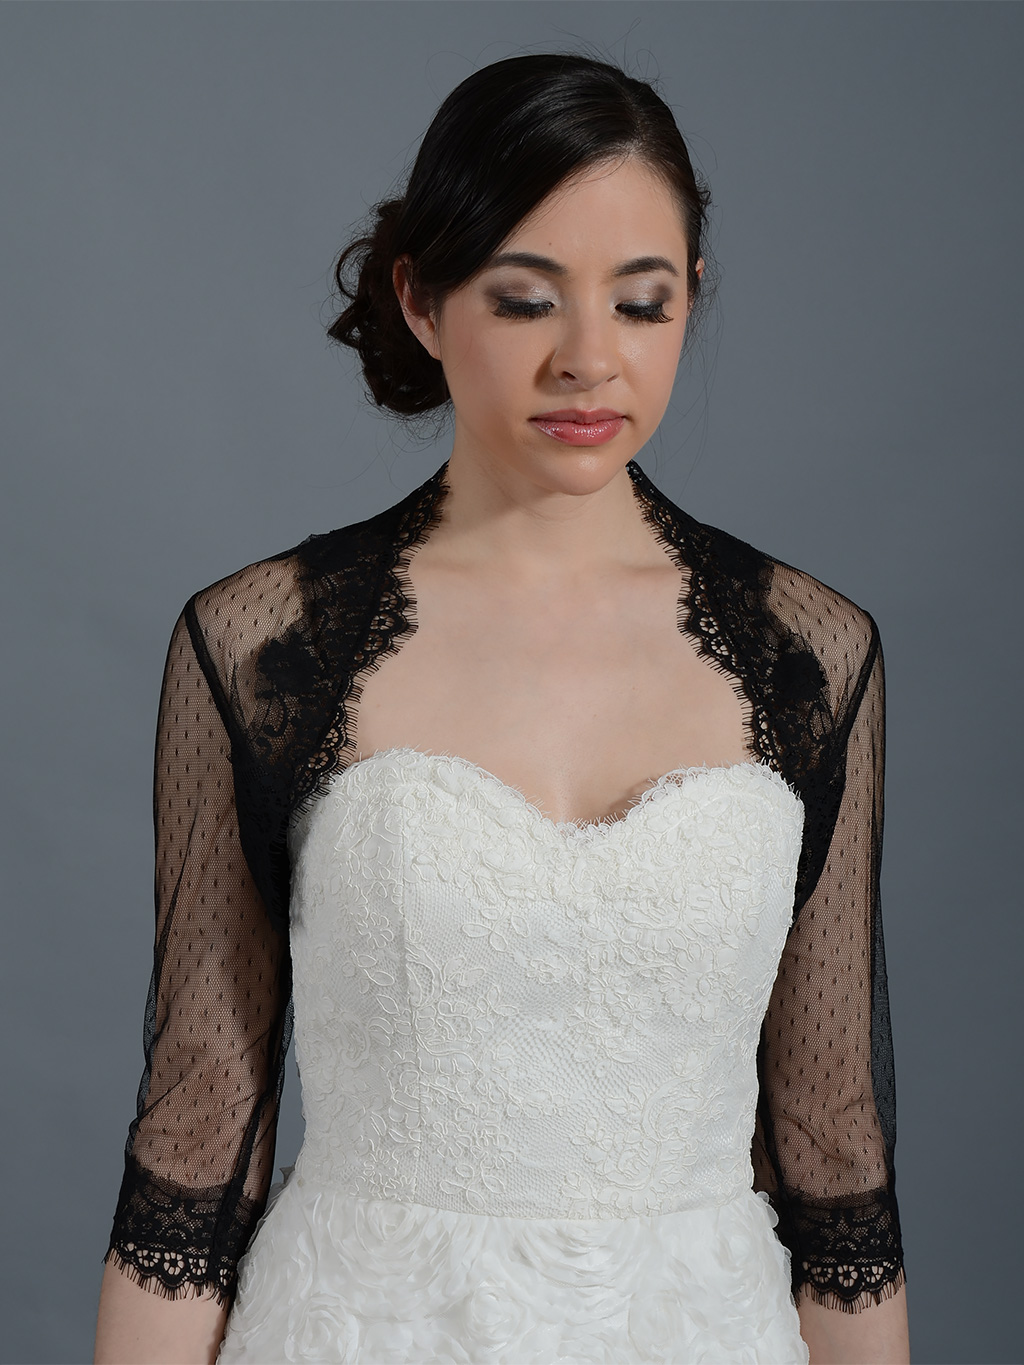 ... Lace Bolero Jacket > Black 3/4 sleeve bridal dot lace wedding bolero